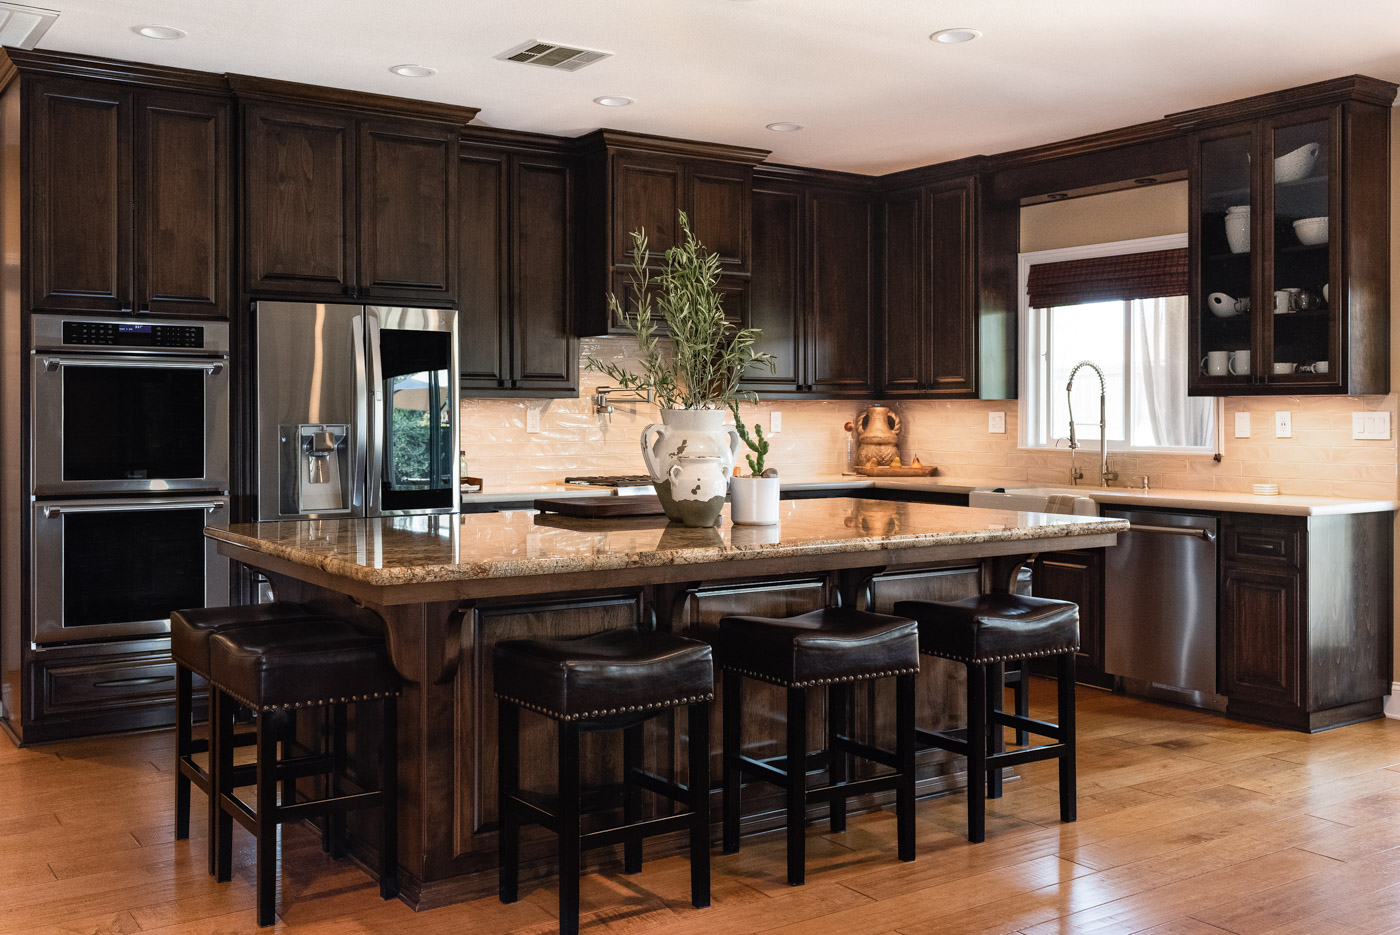 Traditional Mediterranean l-shaped kitchen with dark wood stained cabinets and island